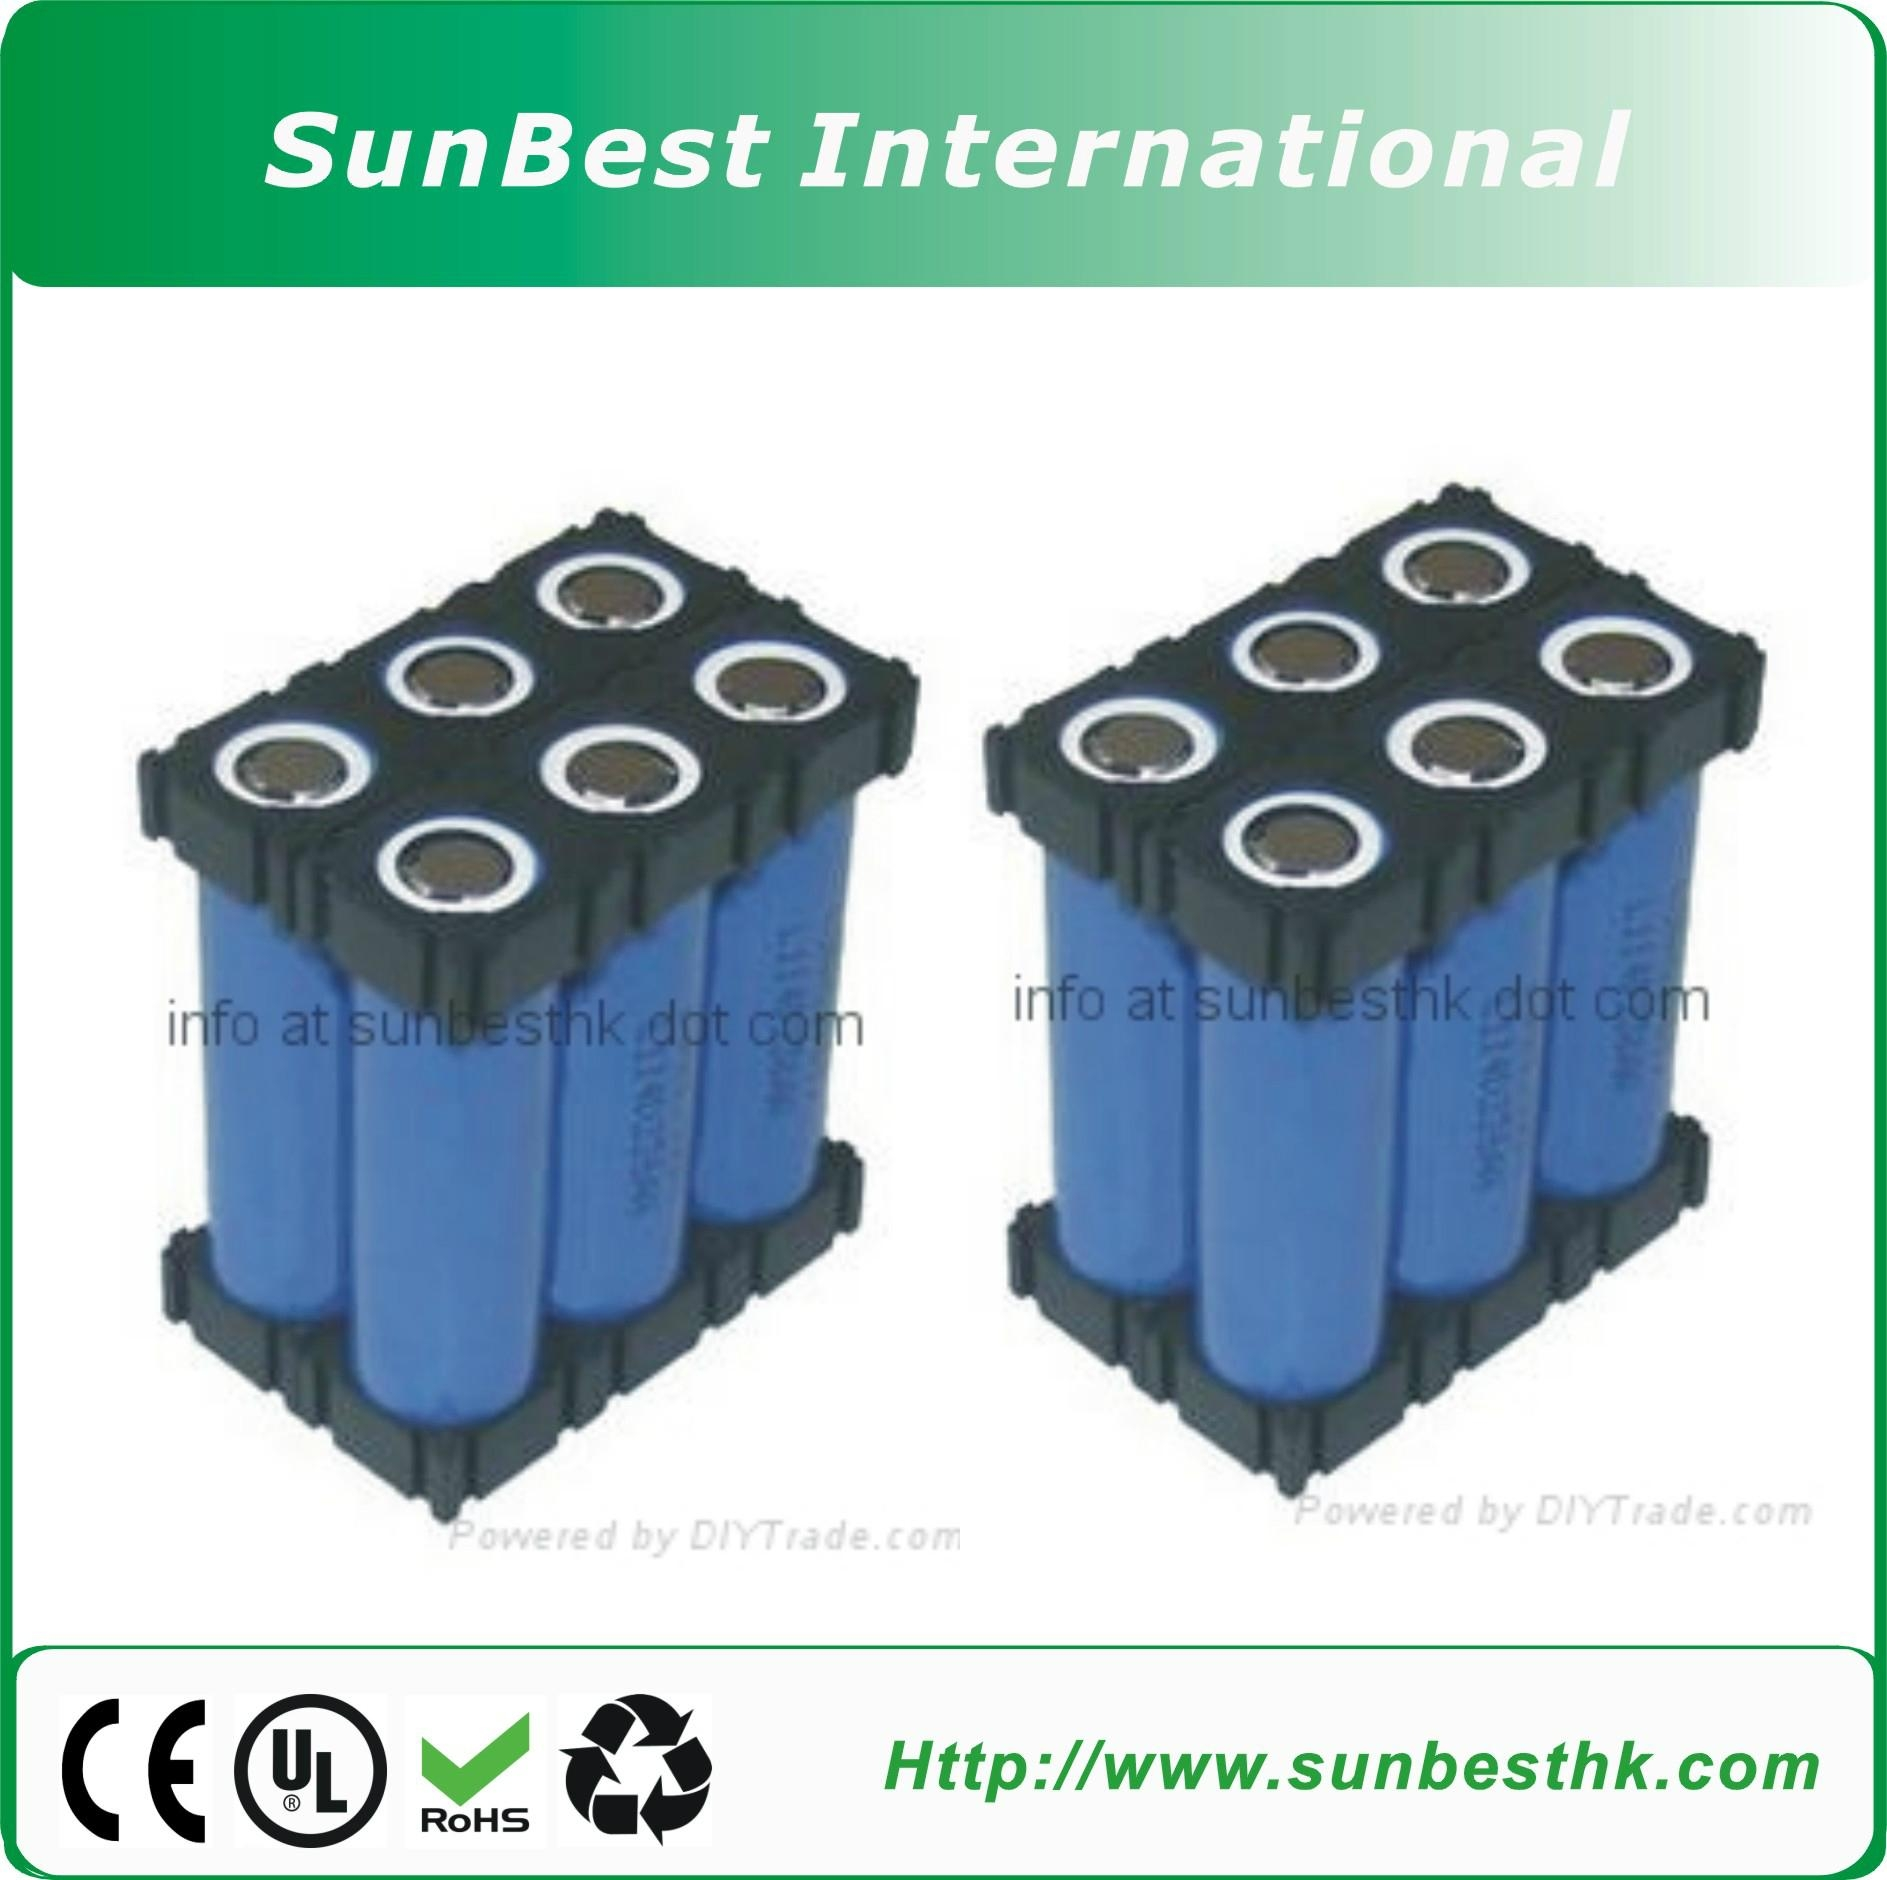 3-cell 18650 Unlimited Expandable Battery Holder